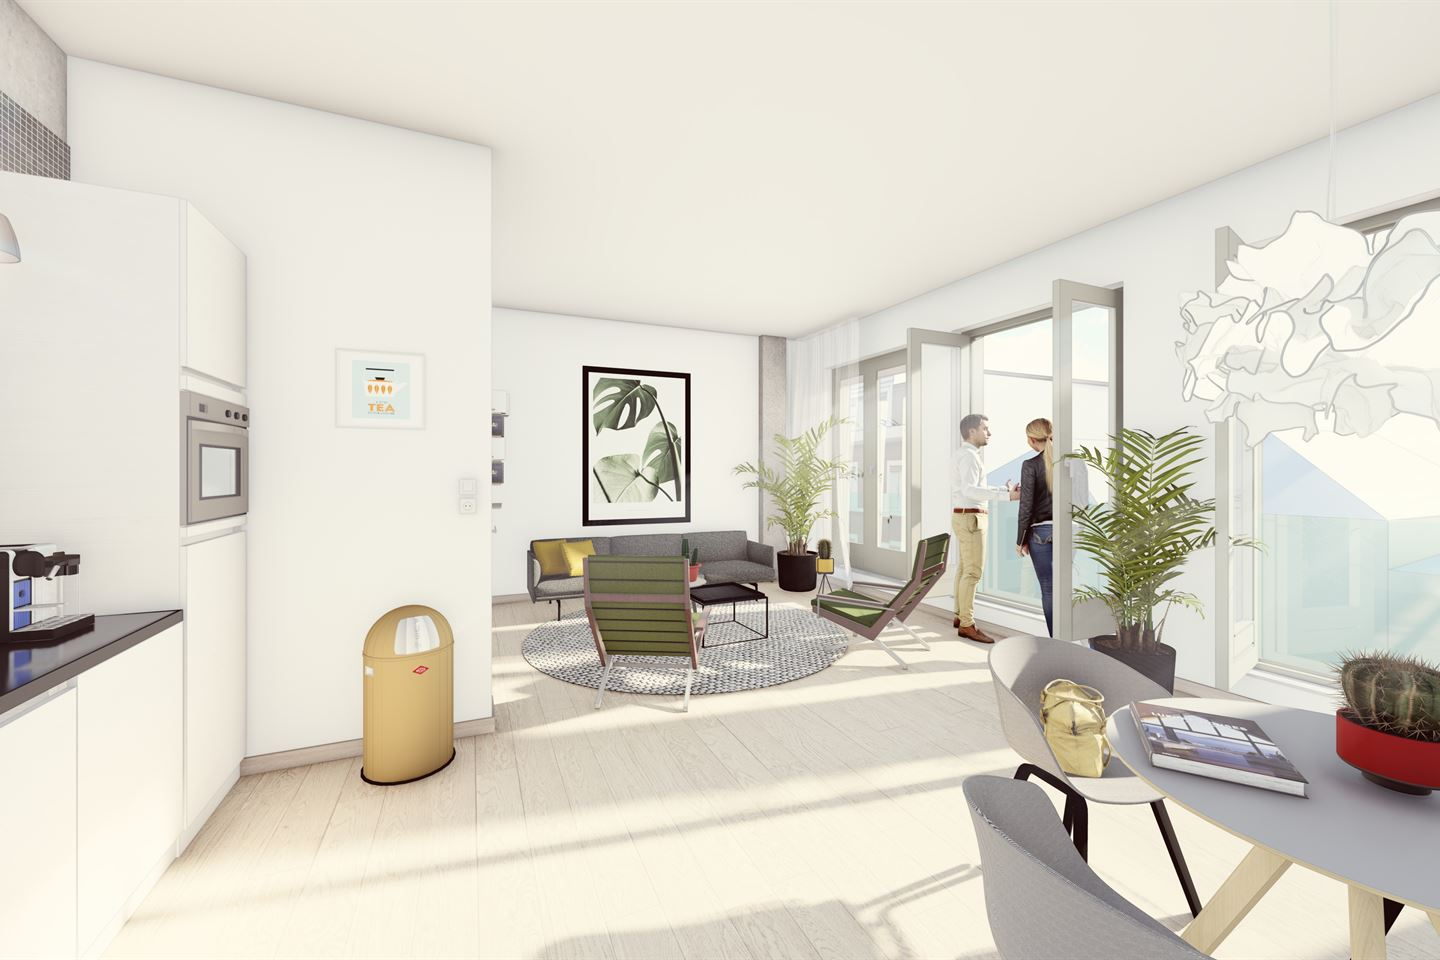 View photo 3 of Appartement (Bouwnr. 12)